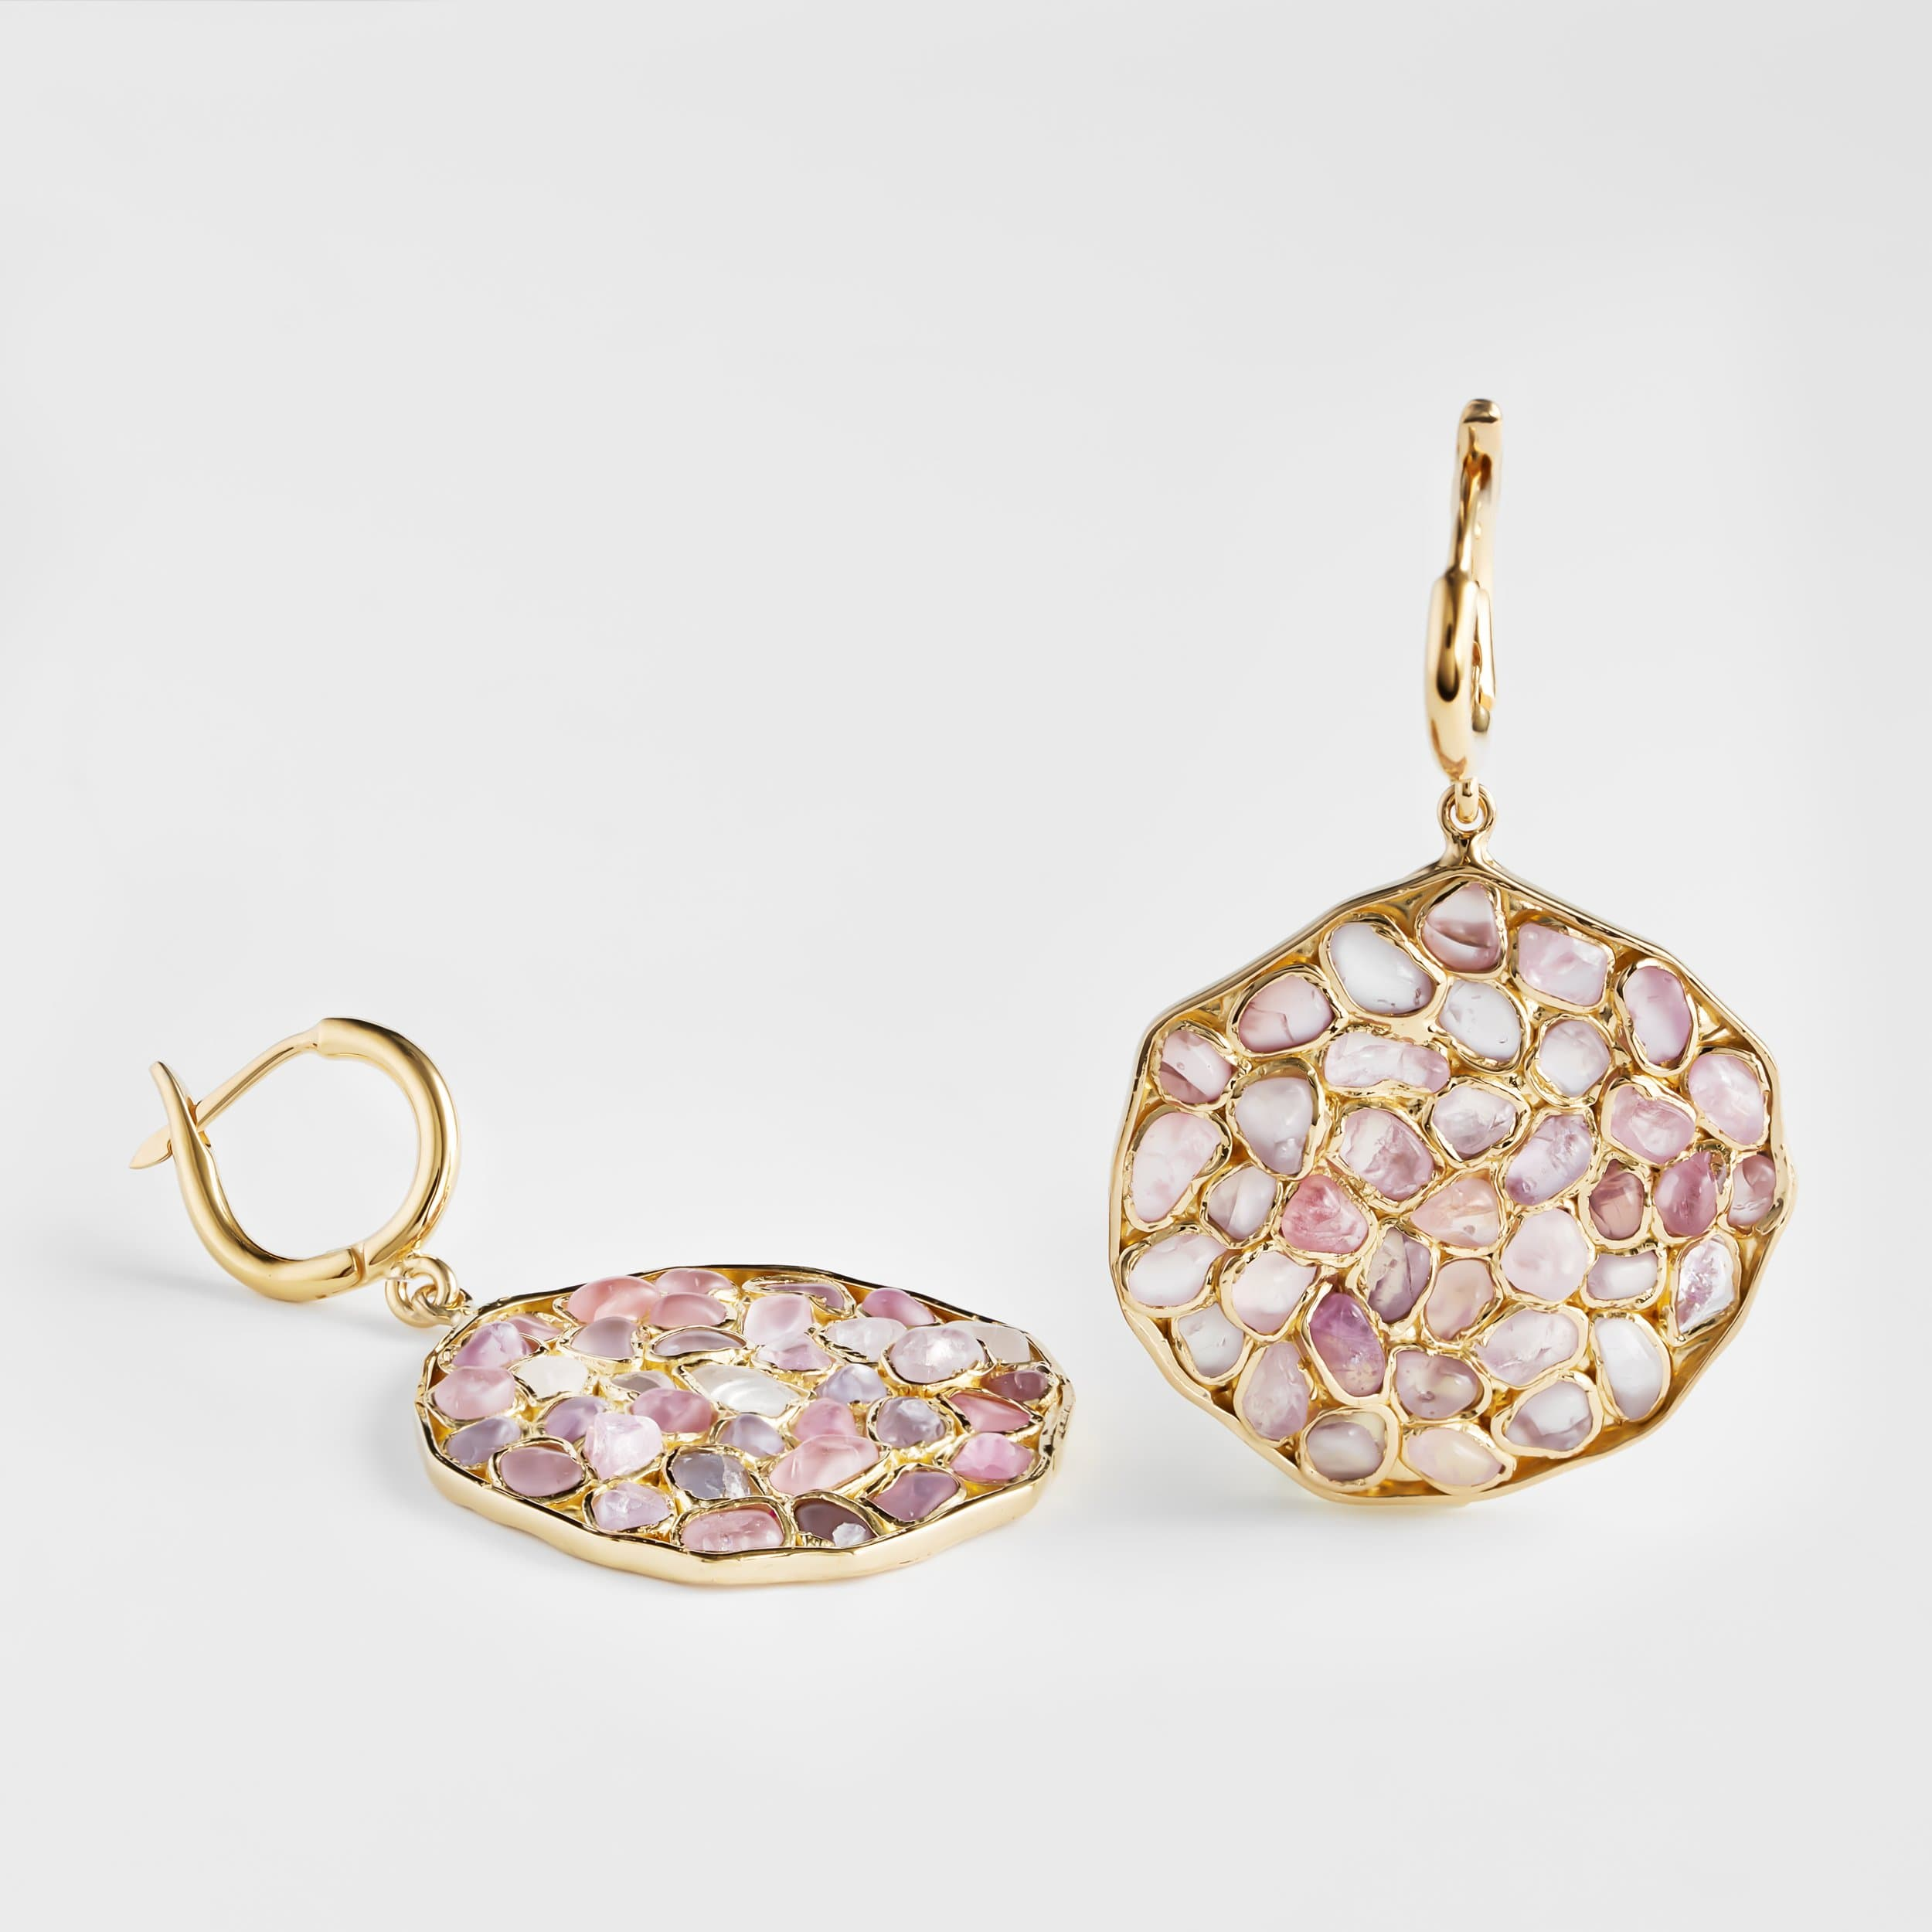 Nancy Spinel Earrings